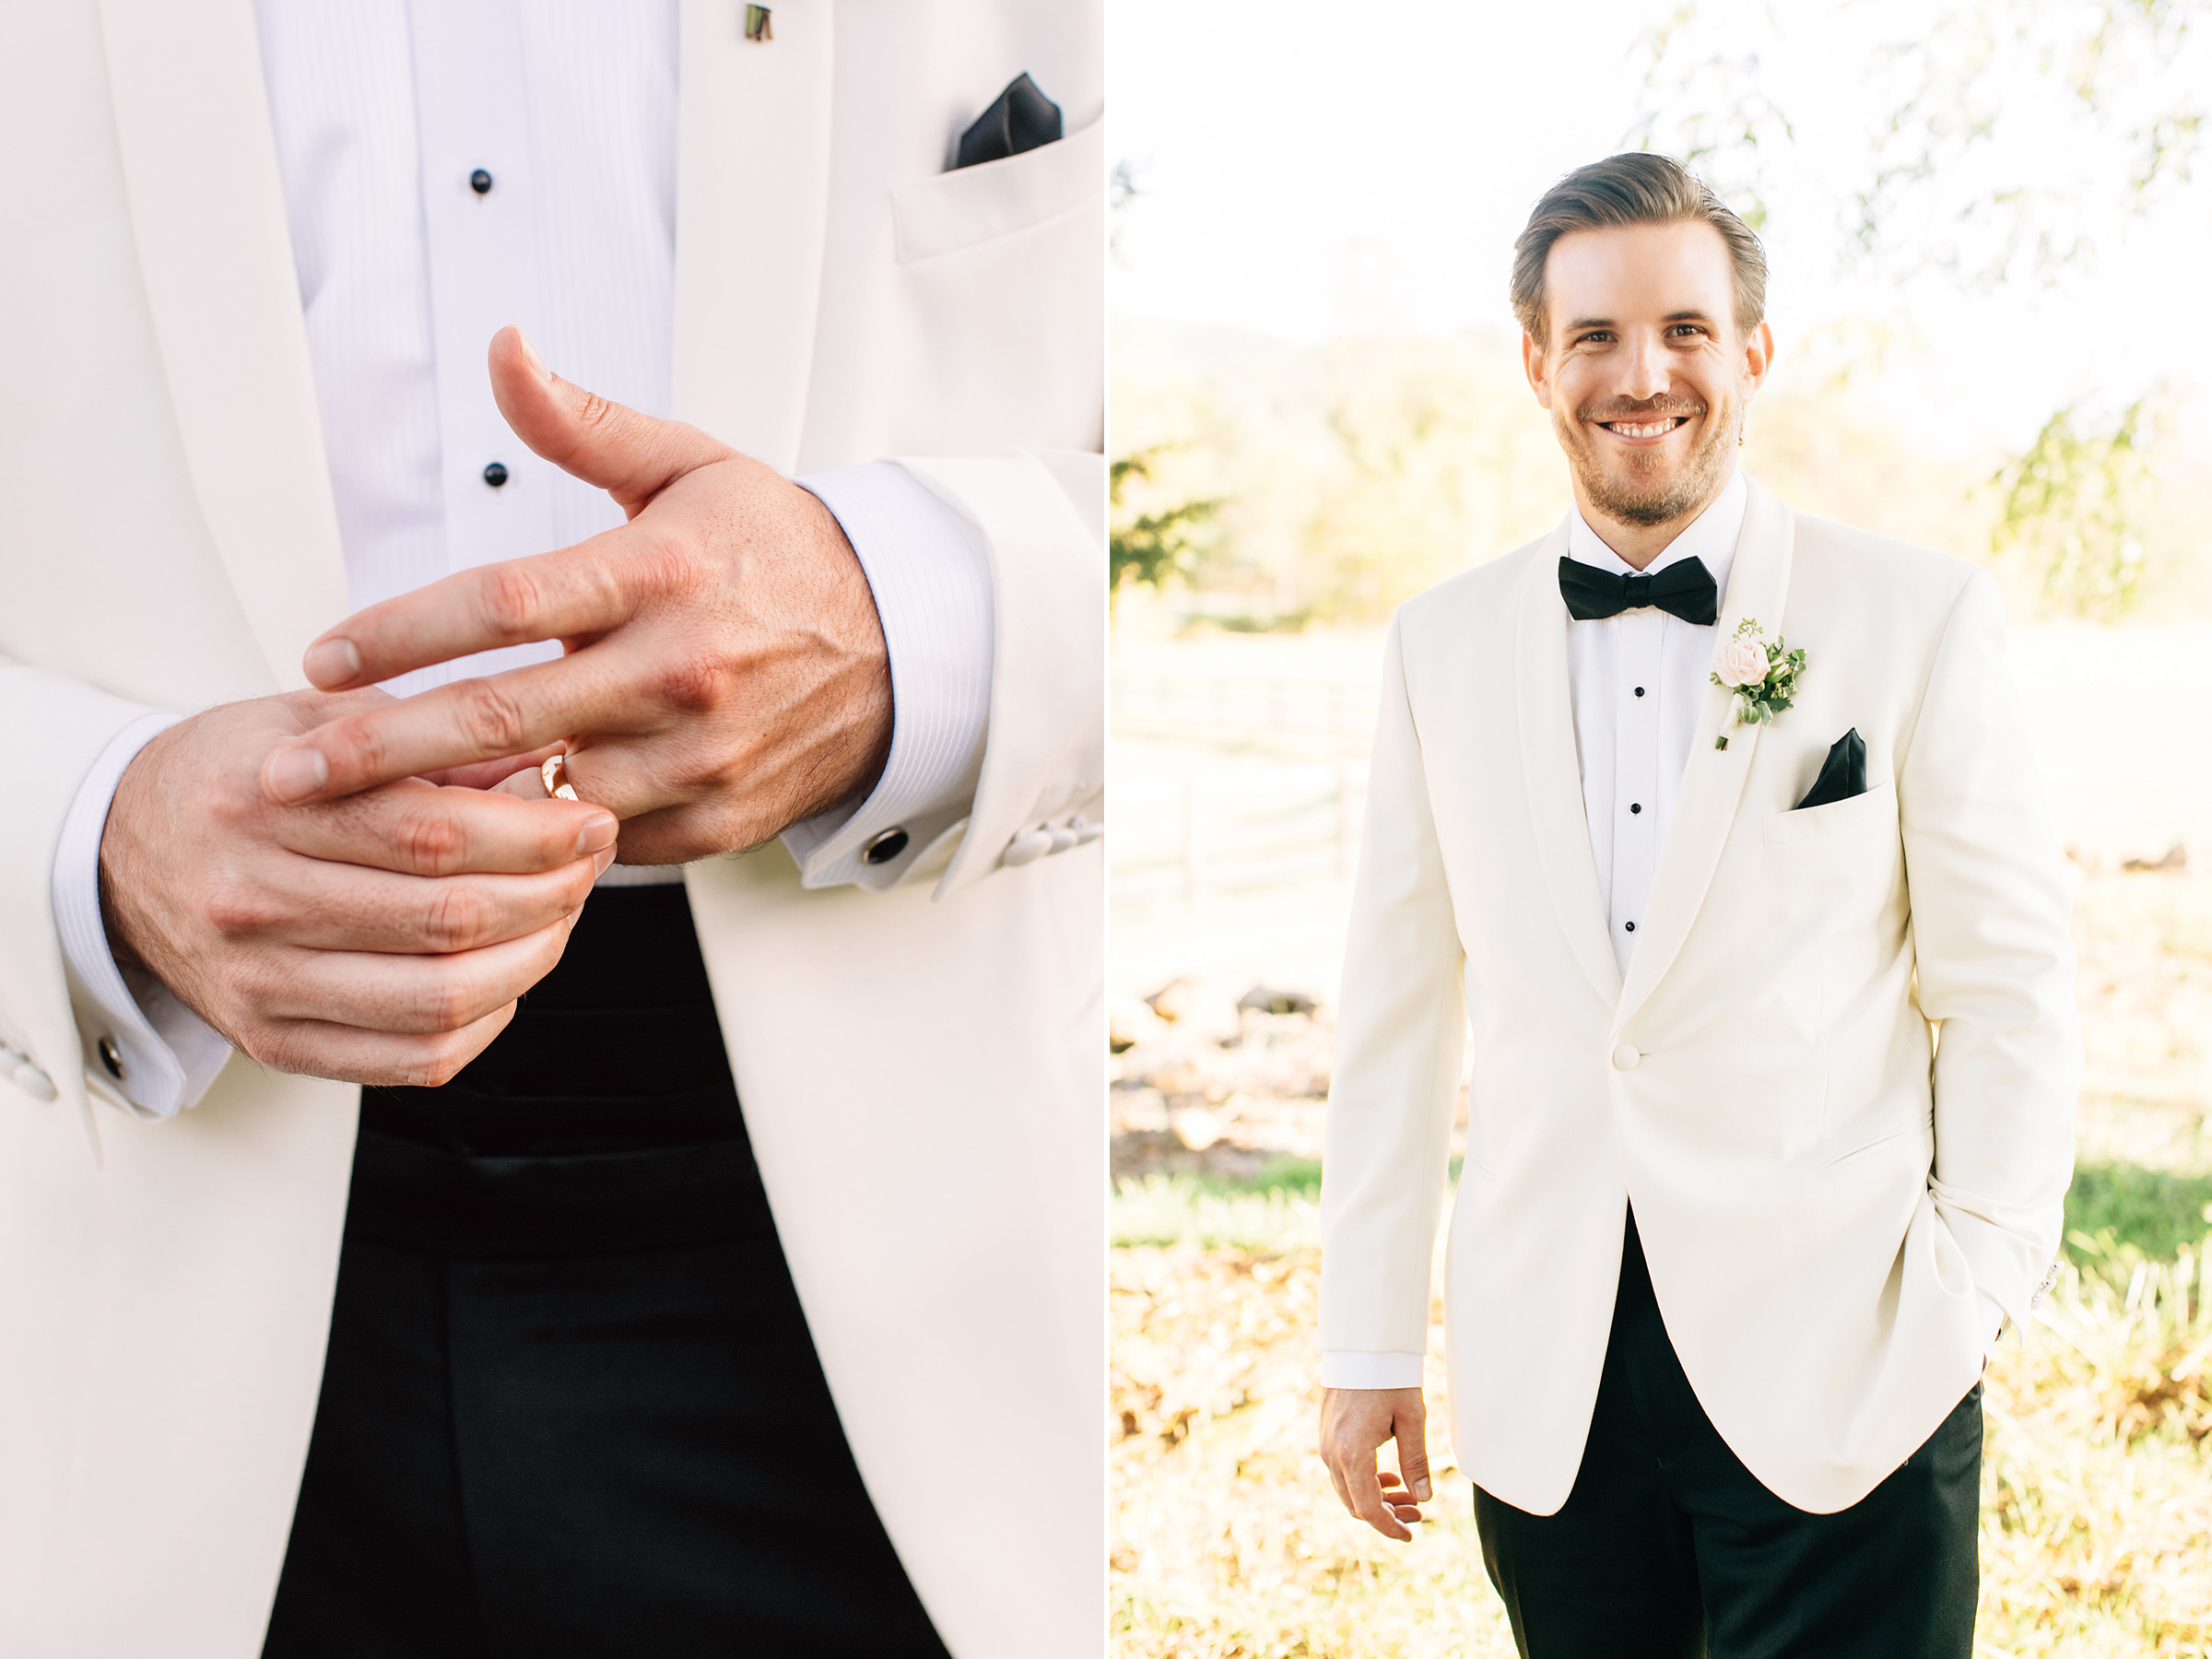 KatieStoopsPhotography-charlottesville wedding-farm wedding32.jpg